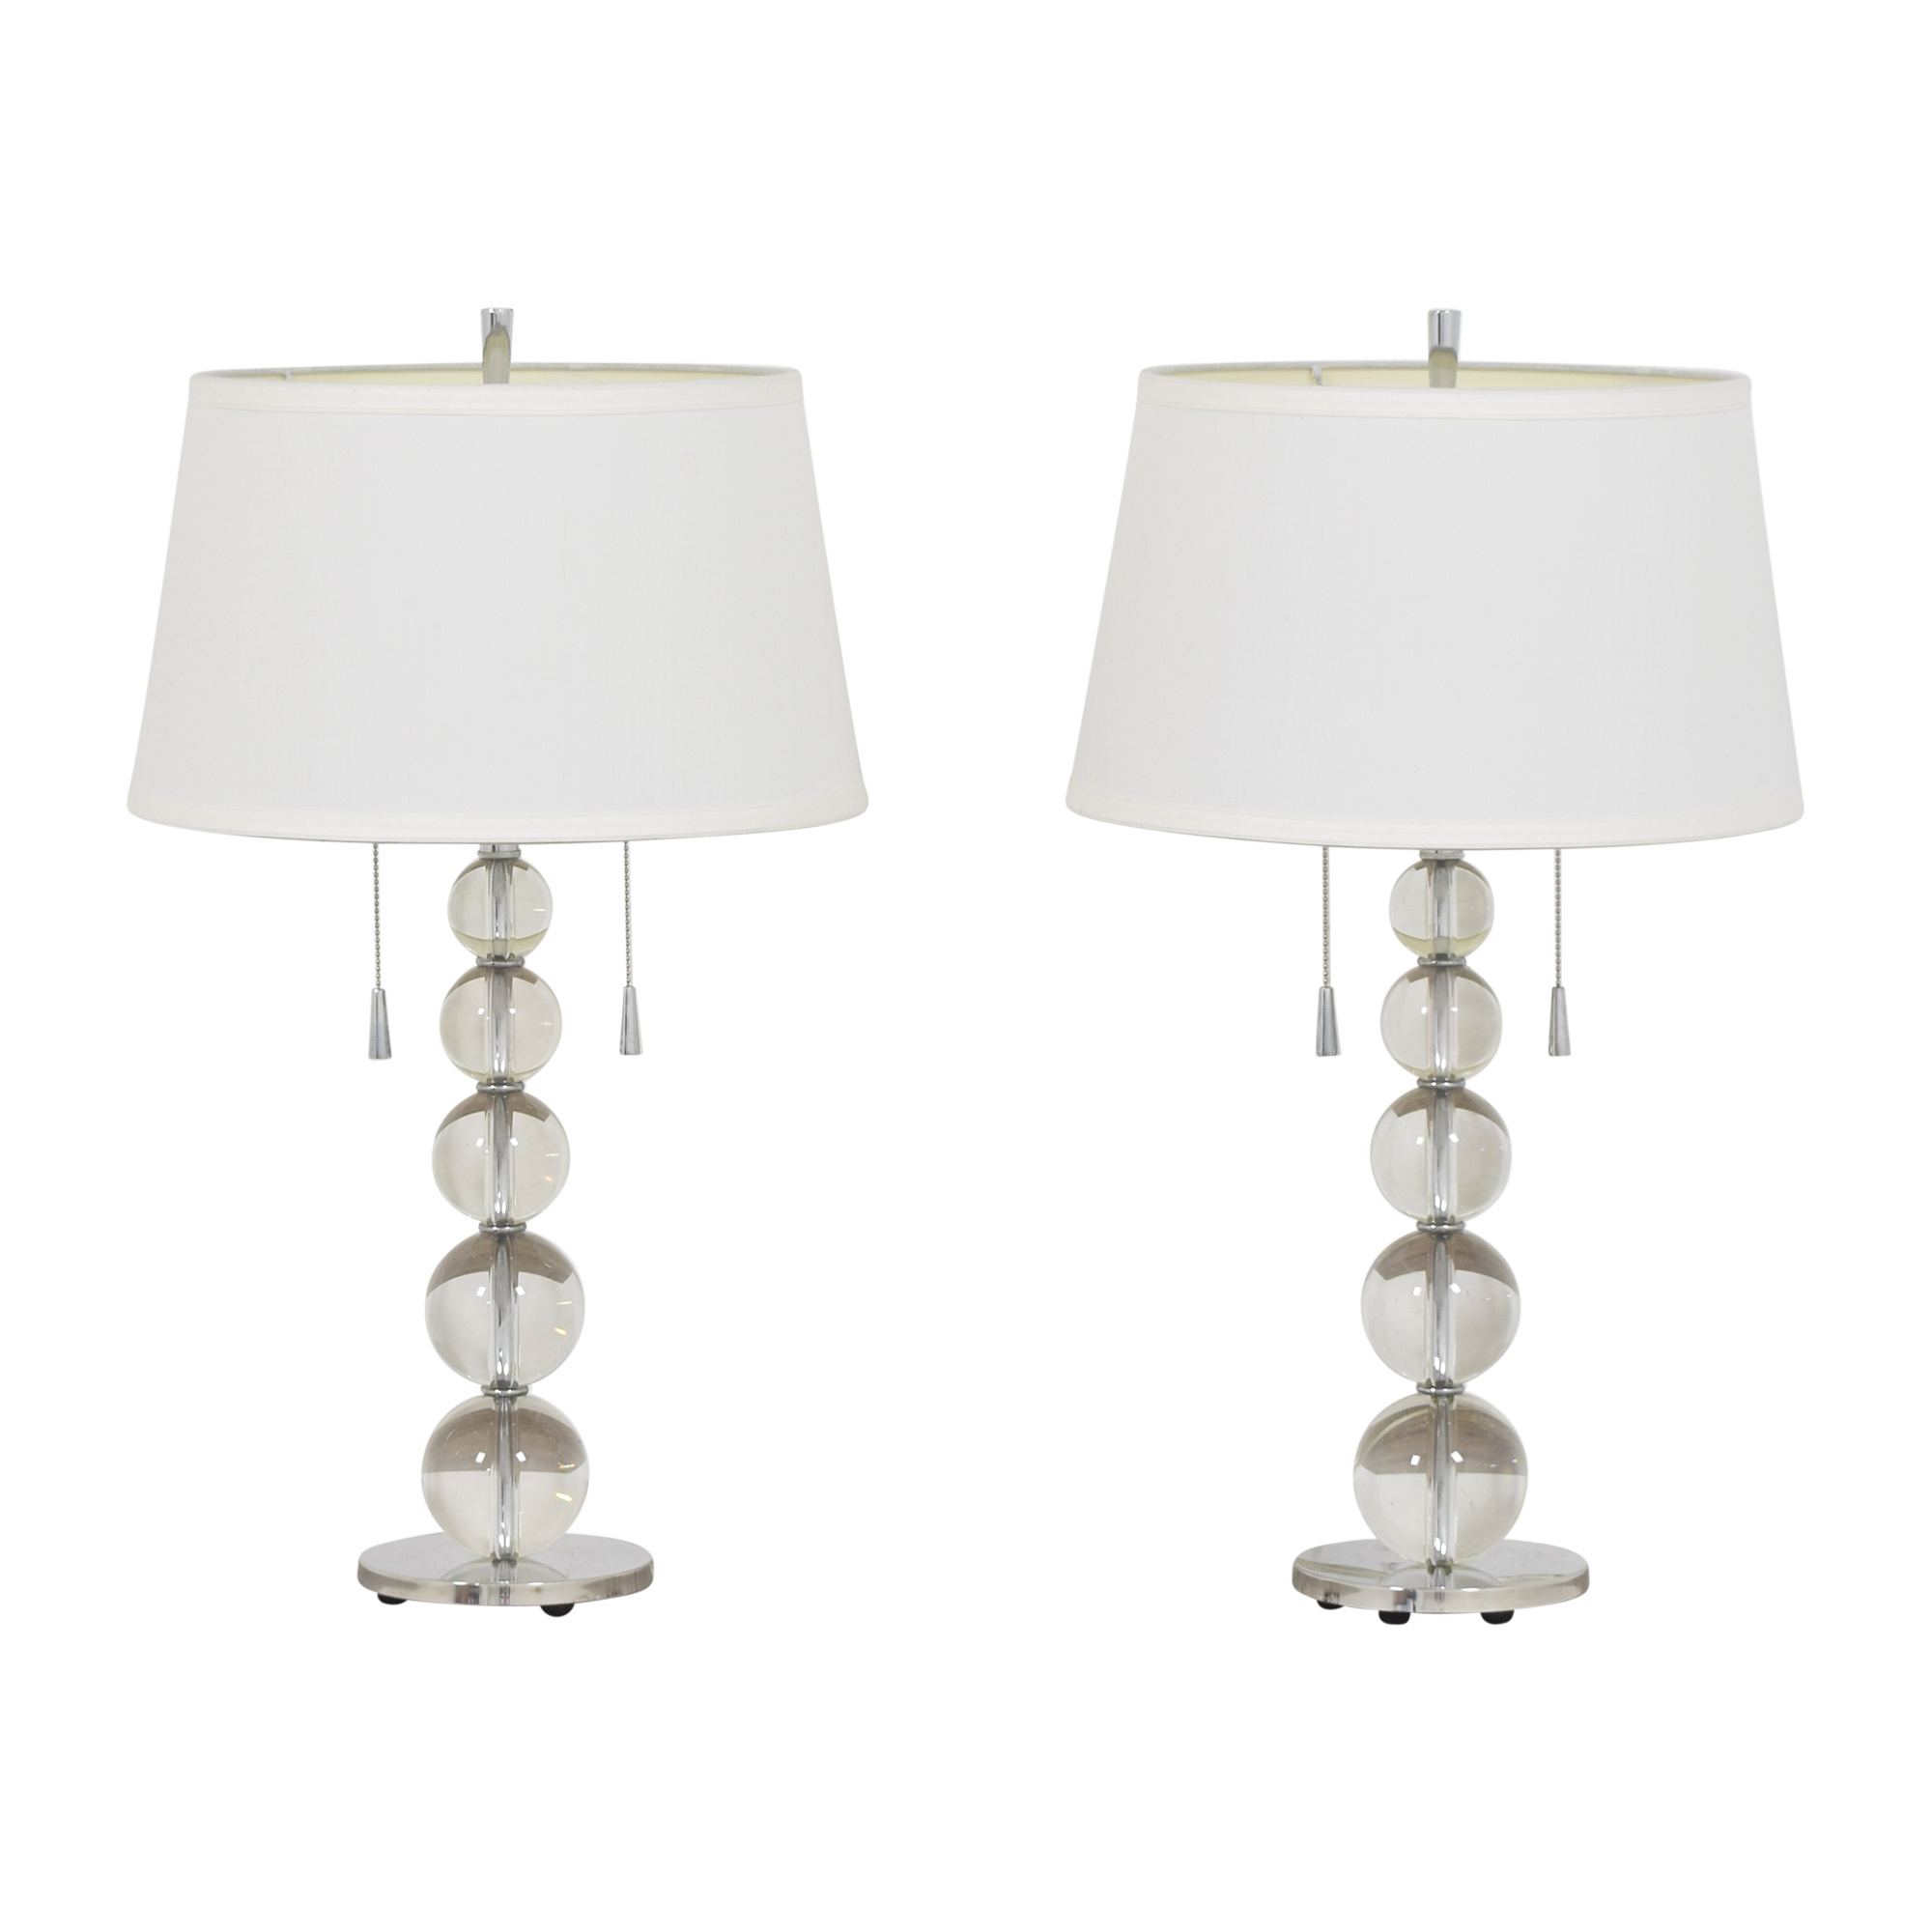 Trend Lighting Trend Palla Table Lamps used